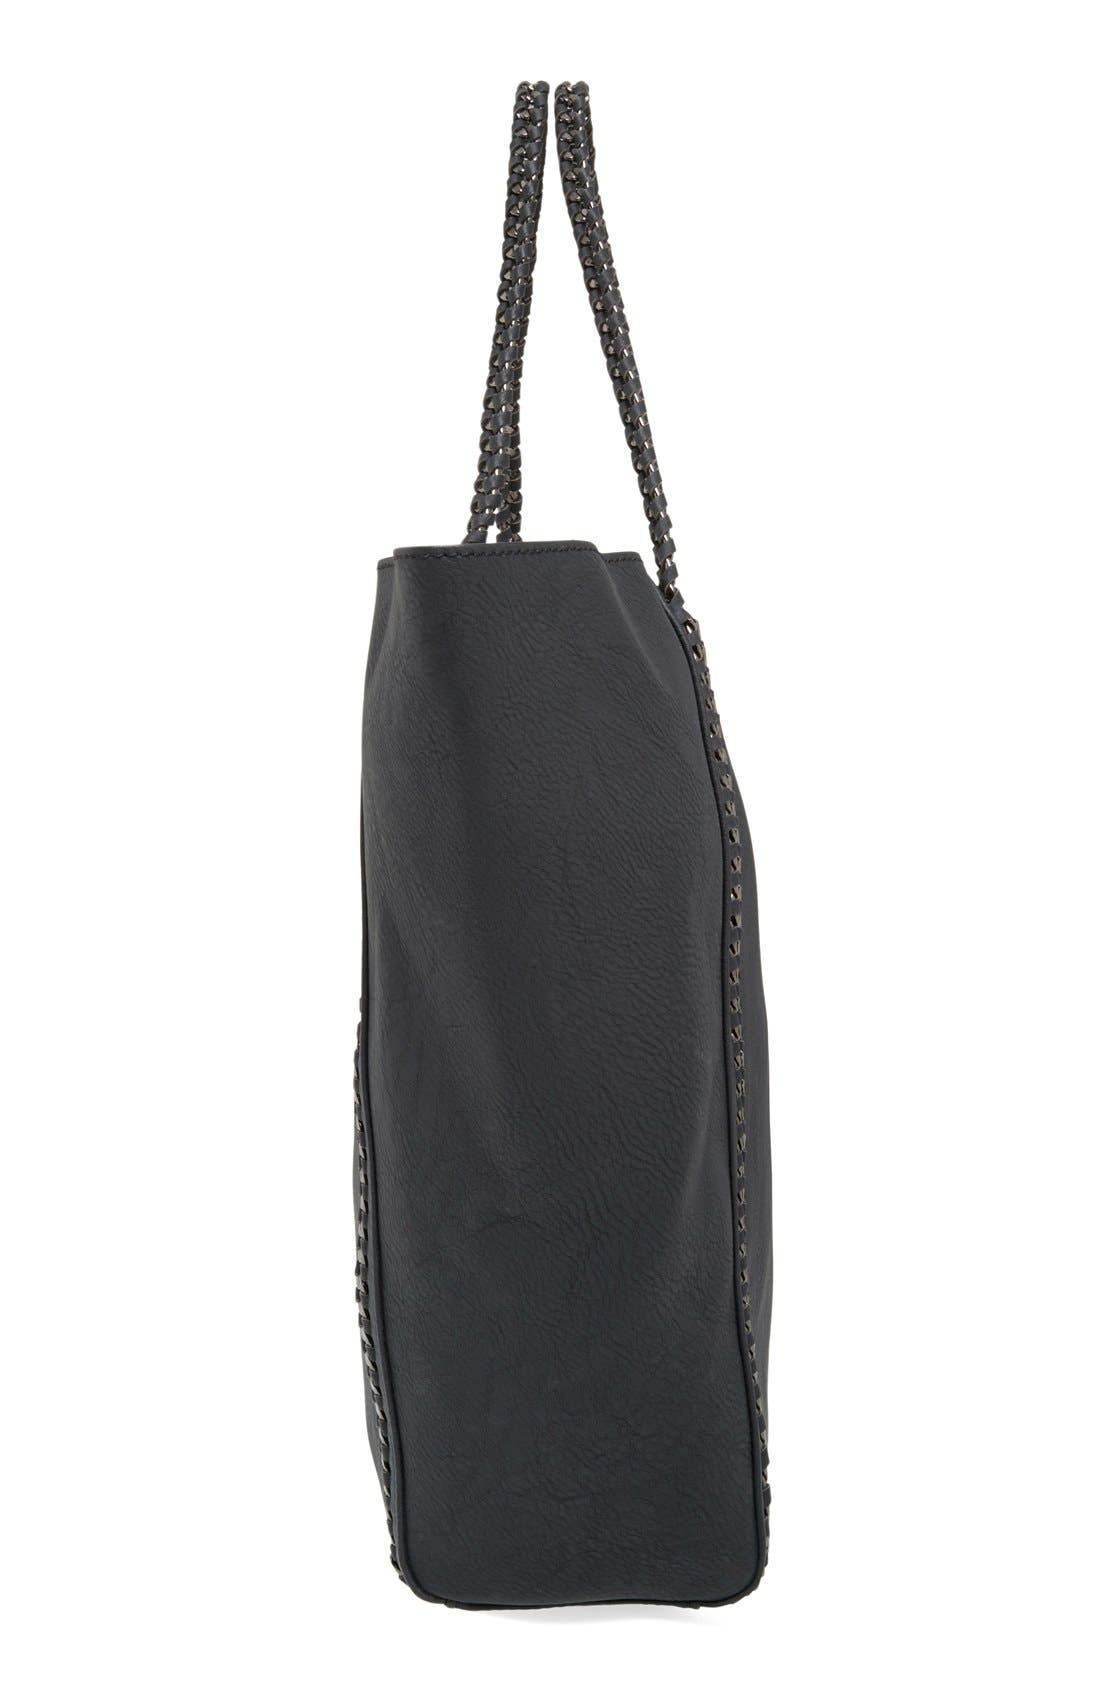 PHASE 3, Chain Faux Leather Tote, Alternate thumbnail 2, color, 001